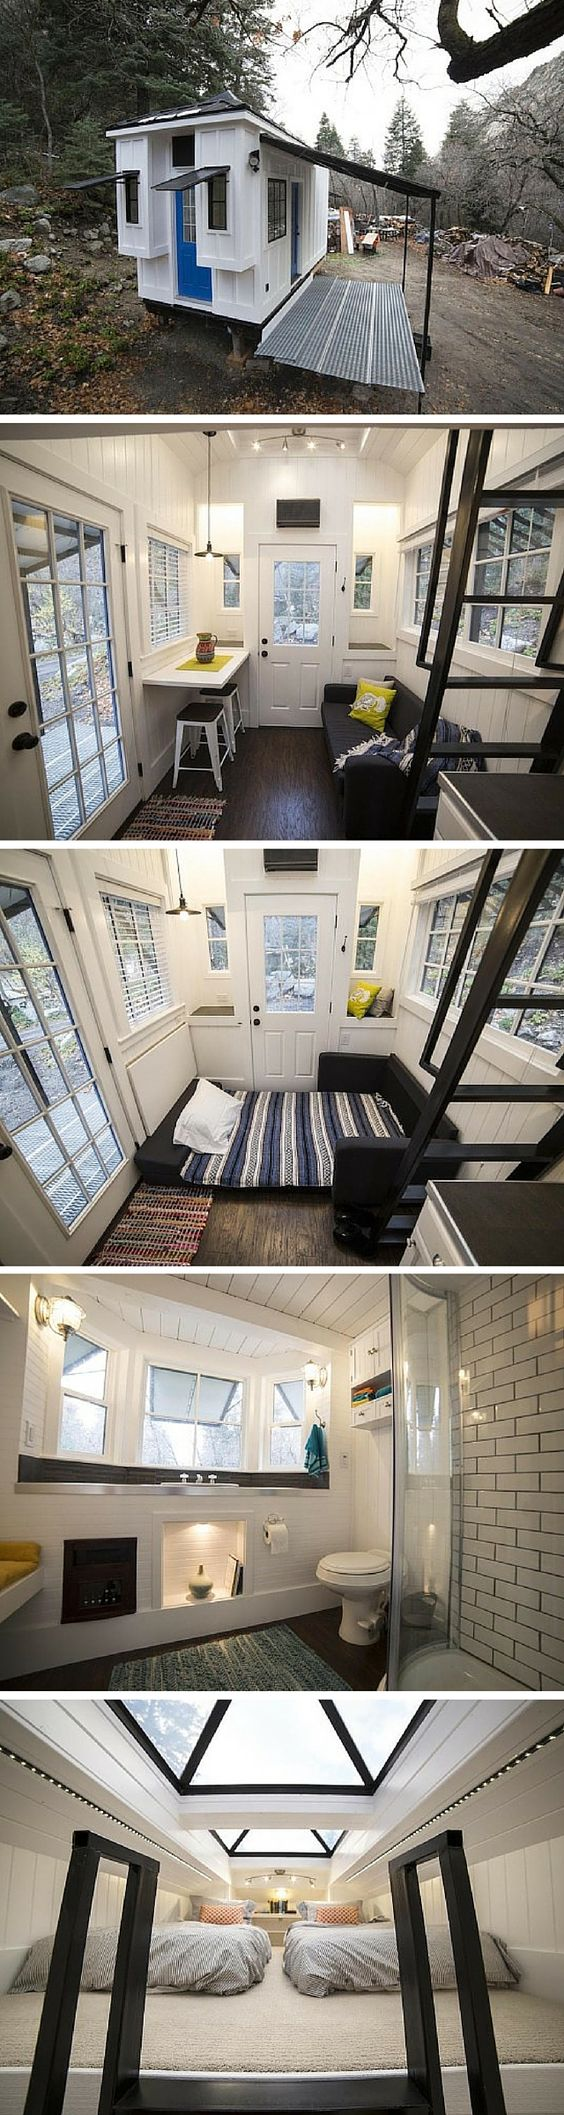 a 192 sq ft tiny house in utah sign pinterest the